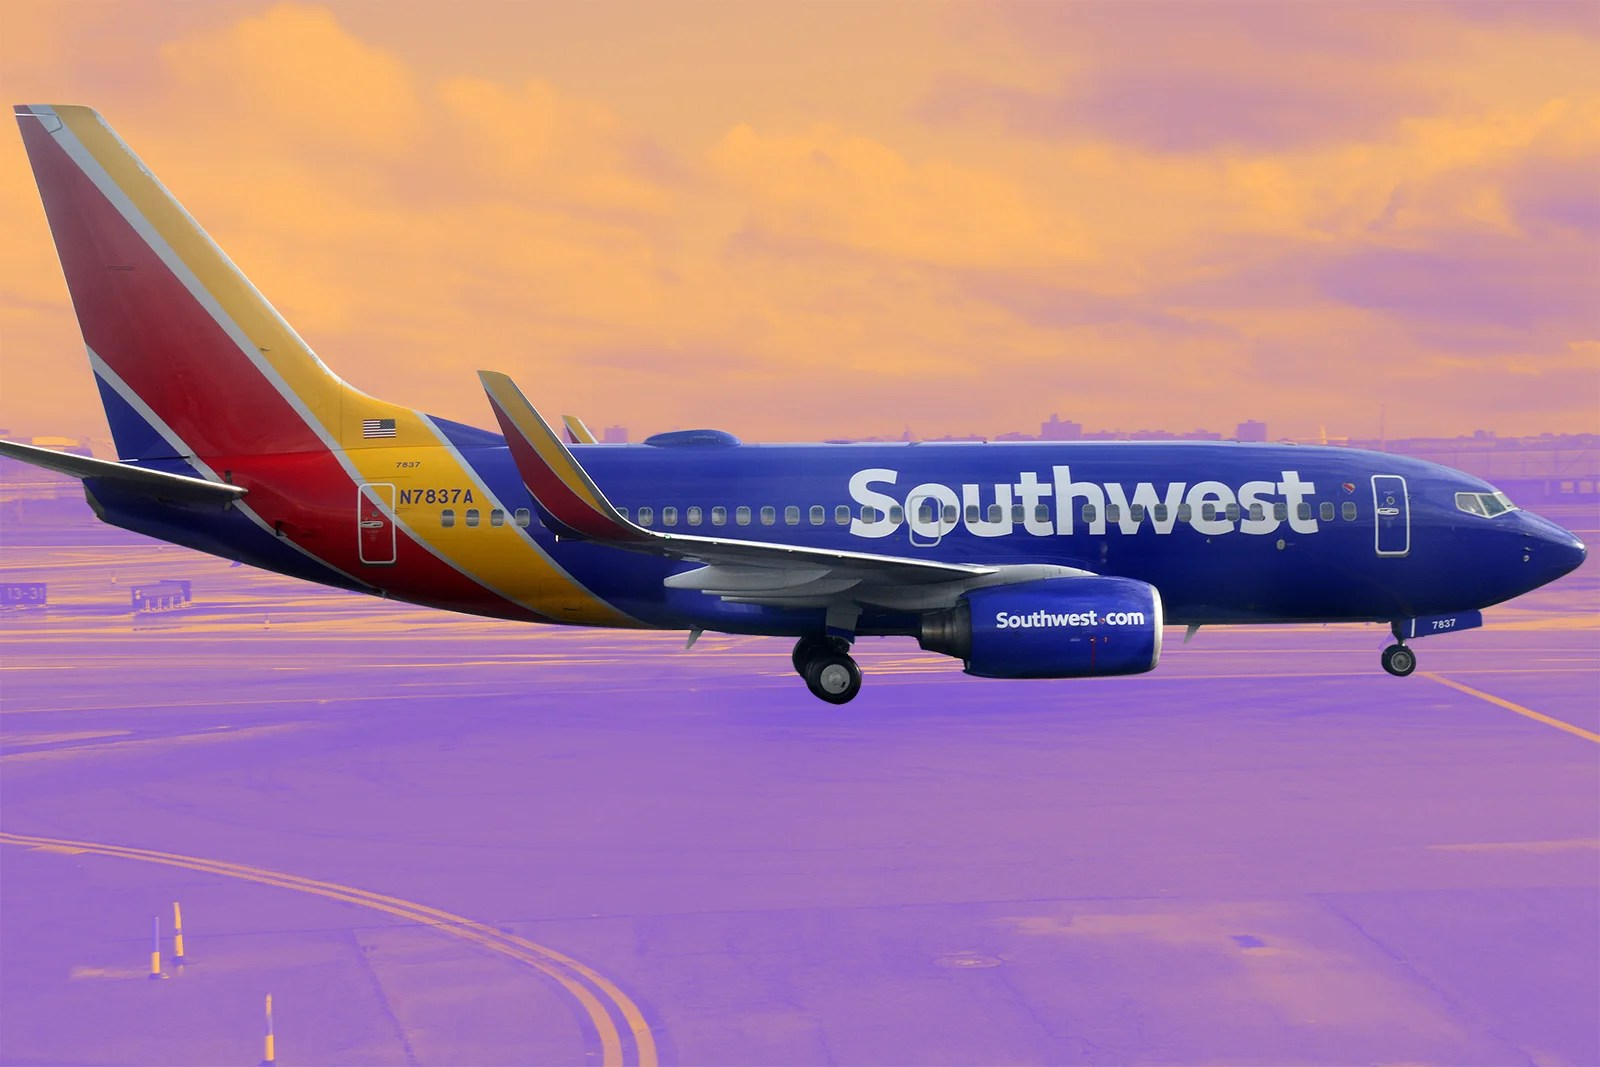 Southwest schedule extended: Book most of your summer vacation flights now